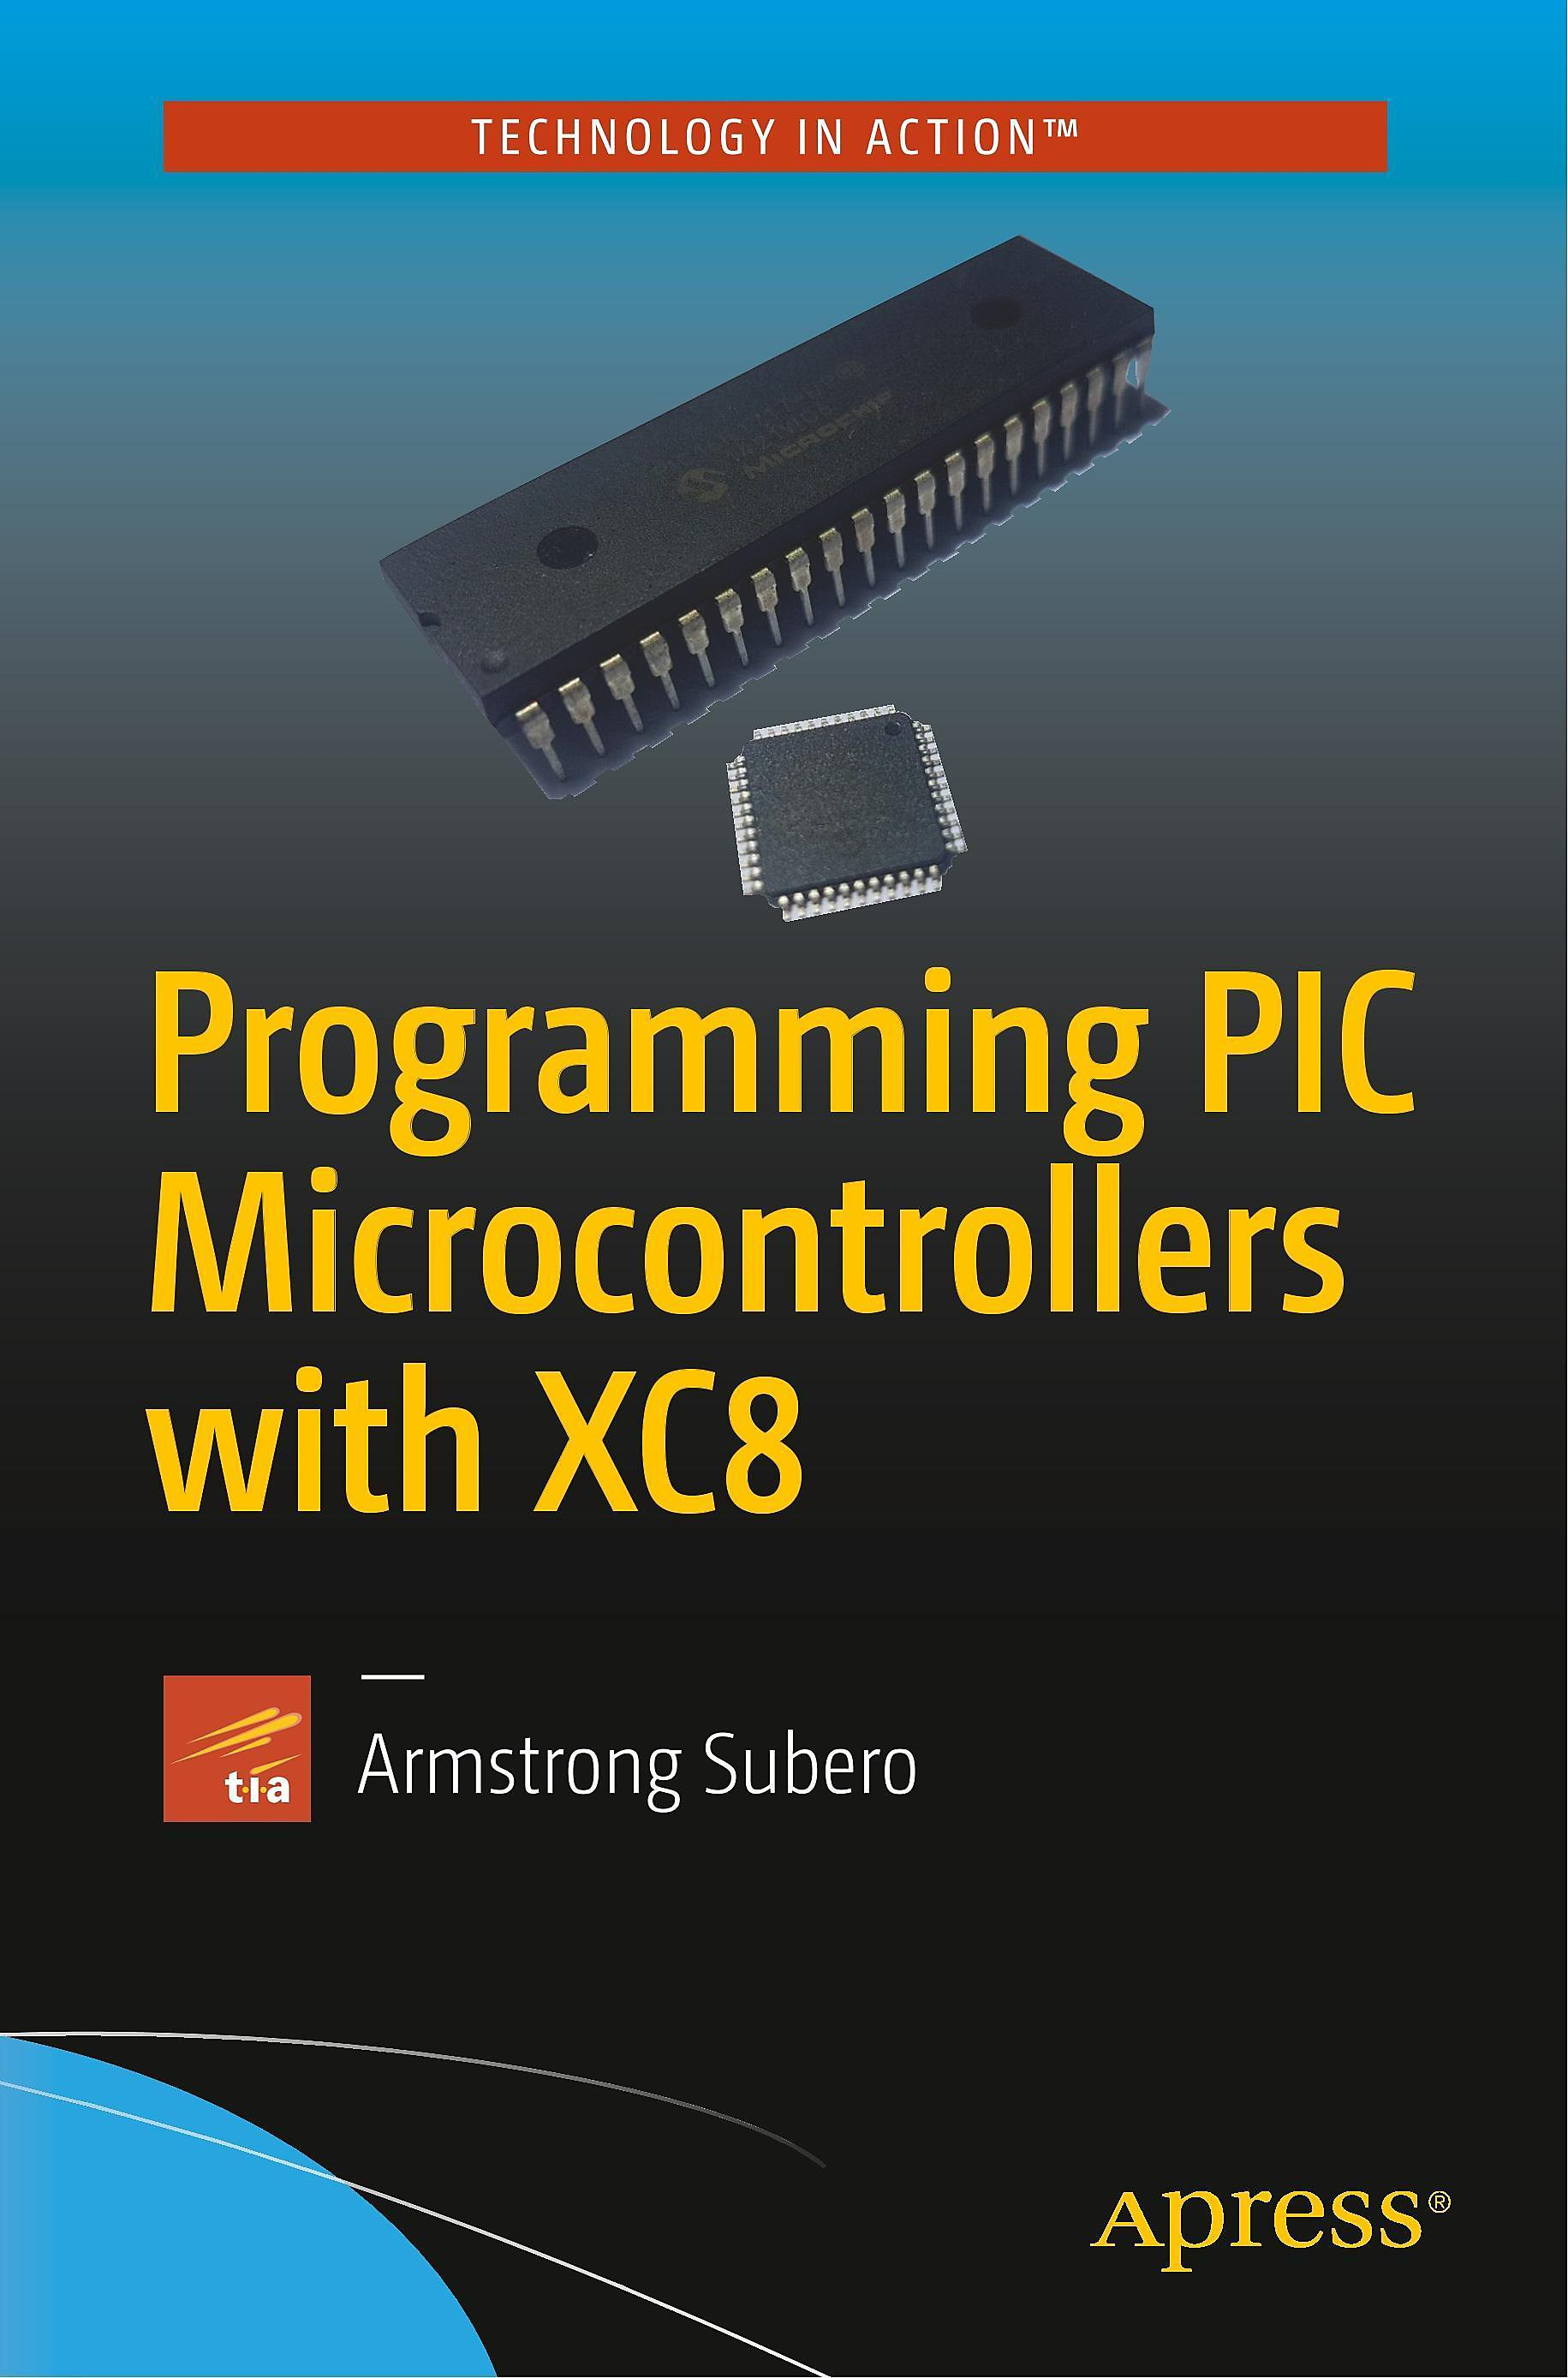 Programming Pic Microcontrollers With Xc8 Buch Versandkostenfrei Analog To Digital Converter Using Pic16f877a Microcontroller Mgctlbxnmzp Mgctlbxv525 Mgctlbxlc